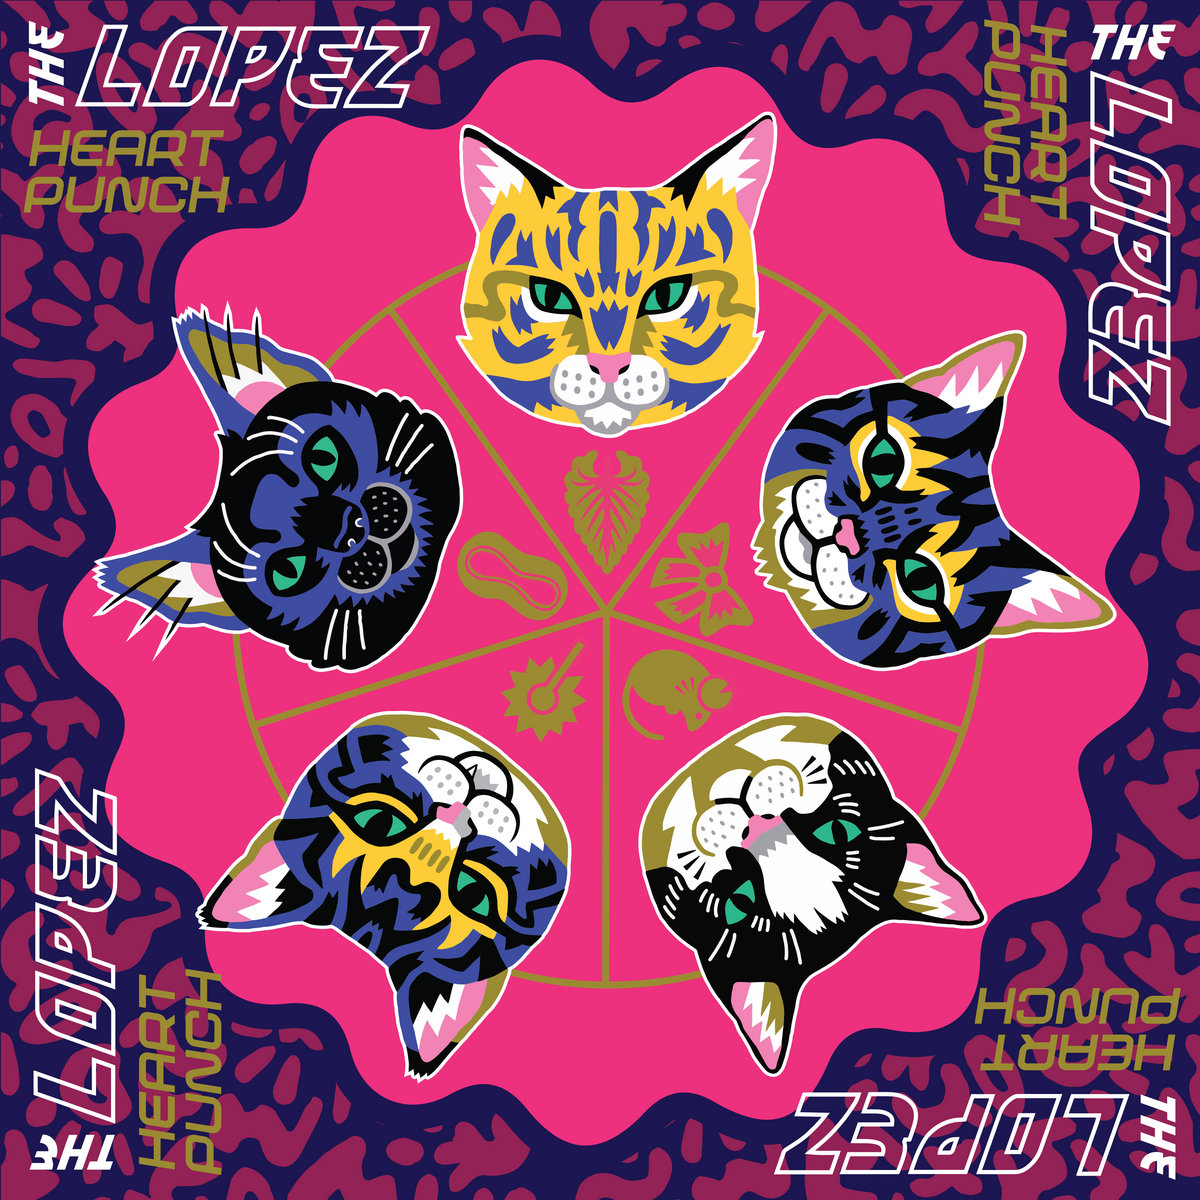 The Lopez - Heart Punch